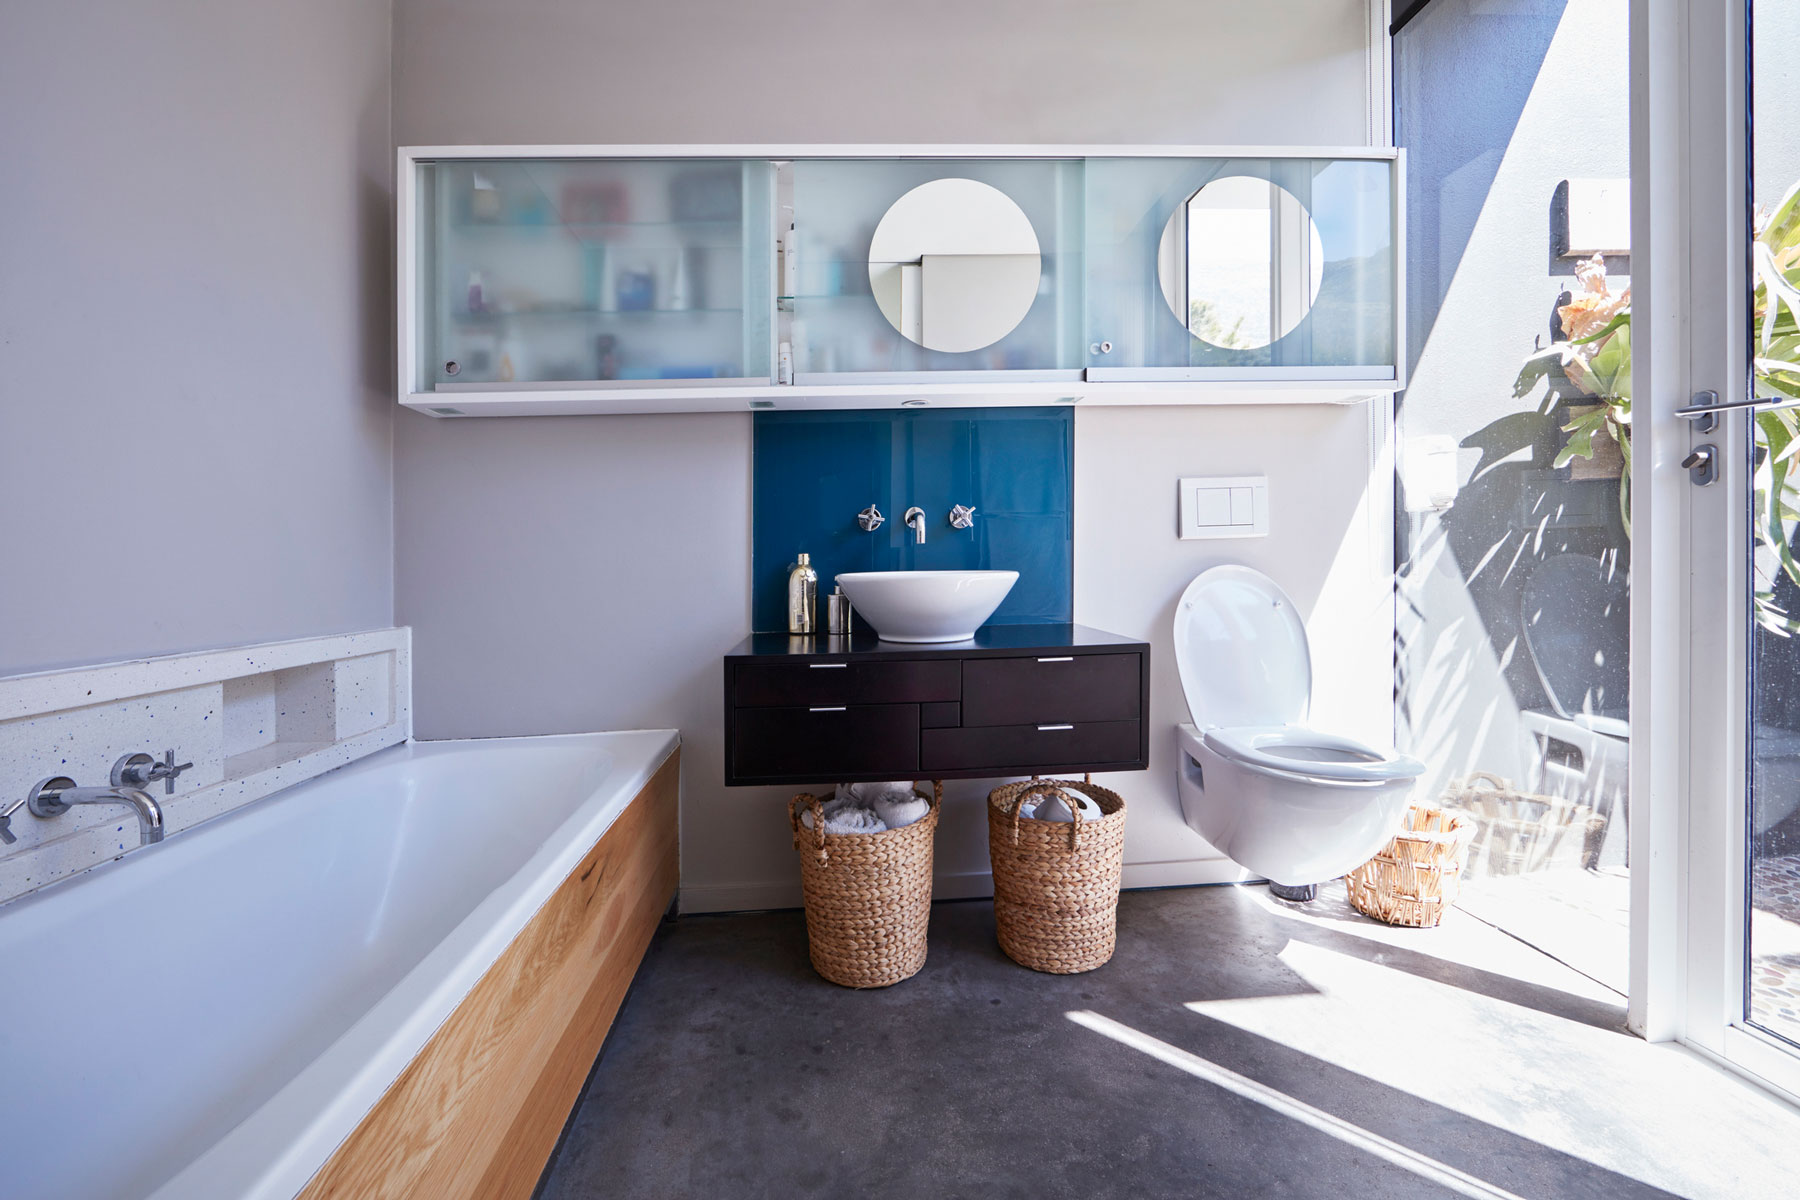 Floating bathroom vanity ideas - modern bathroom with floating sink